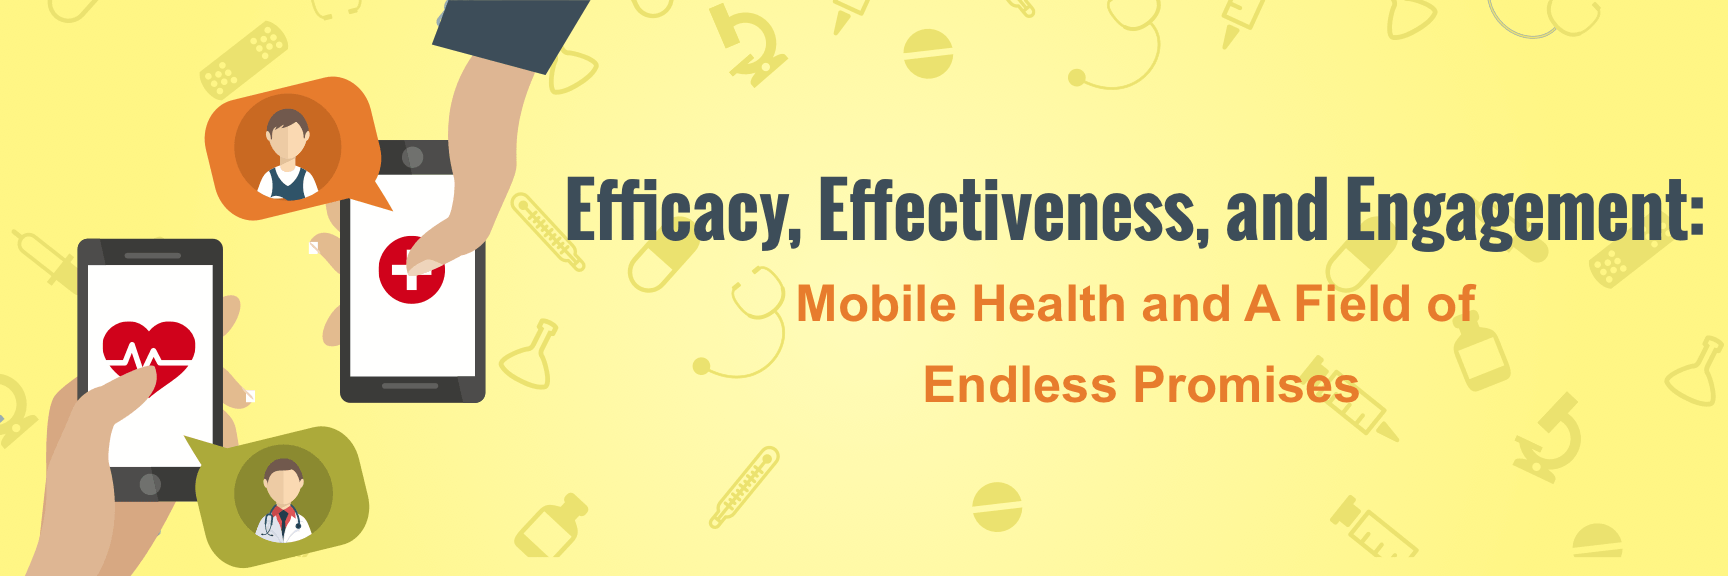 mhealth a field of endless promises